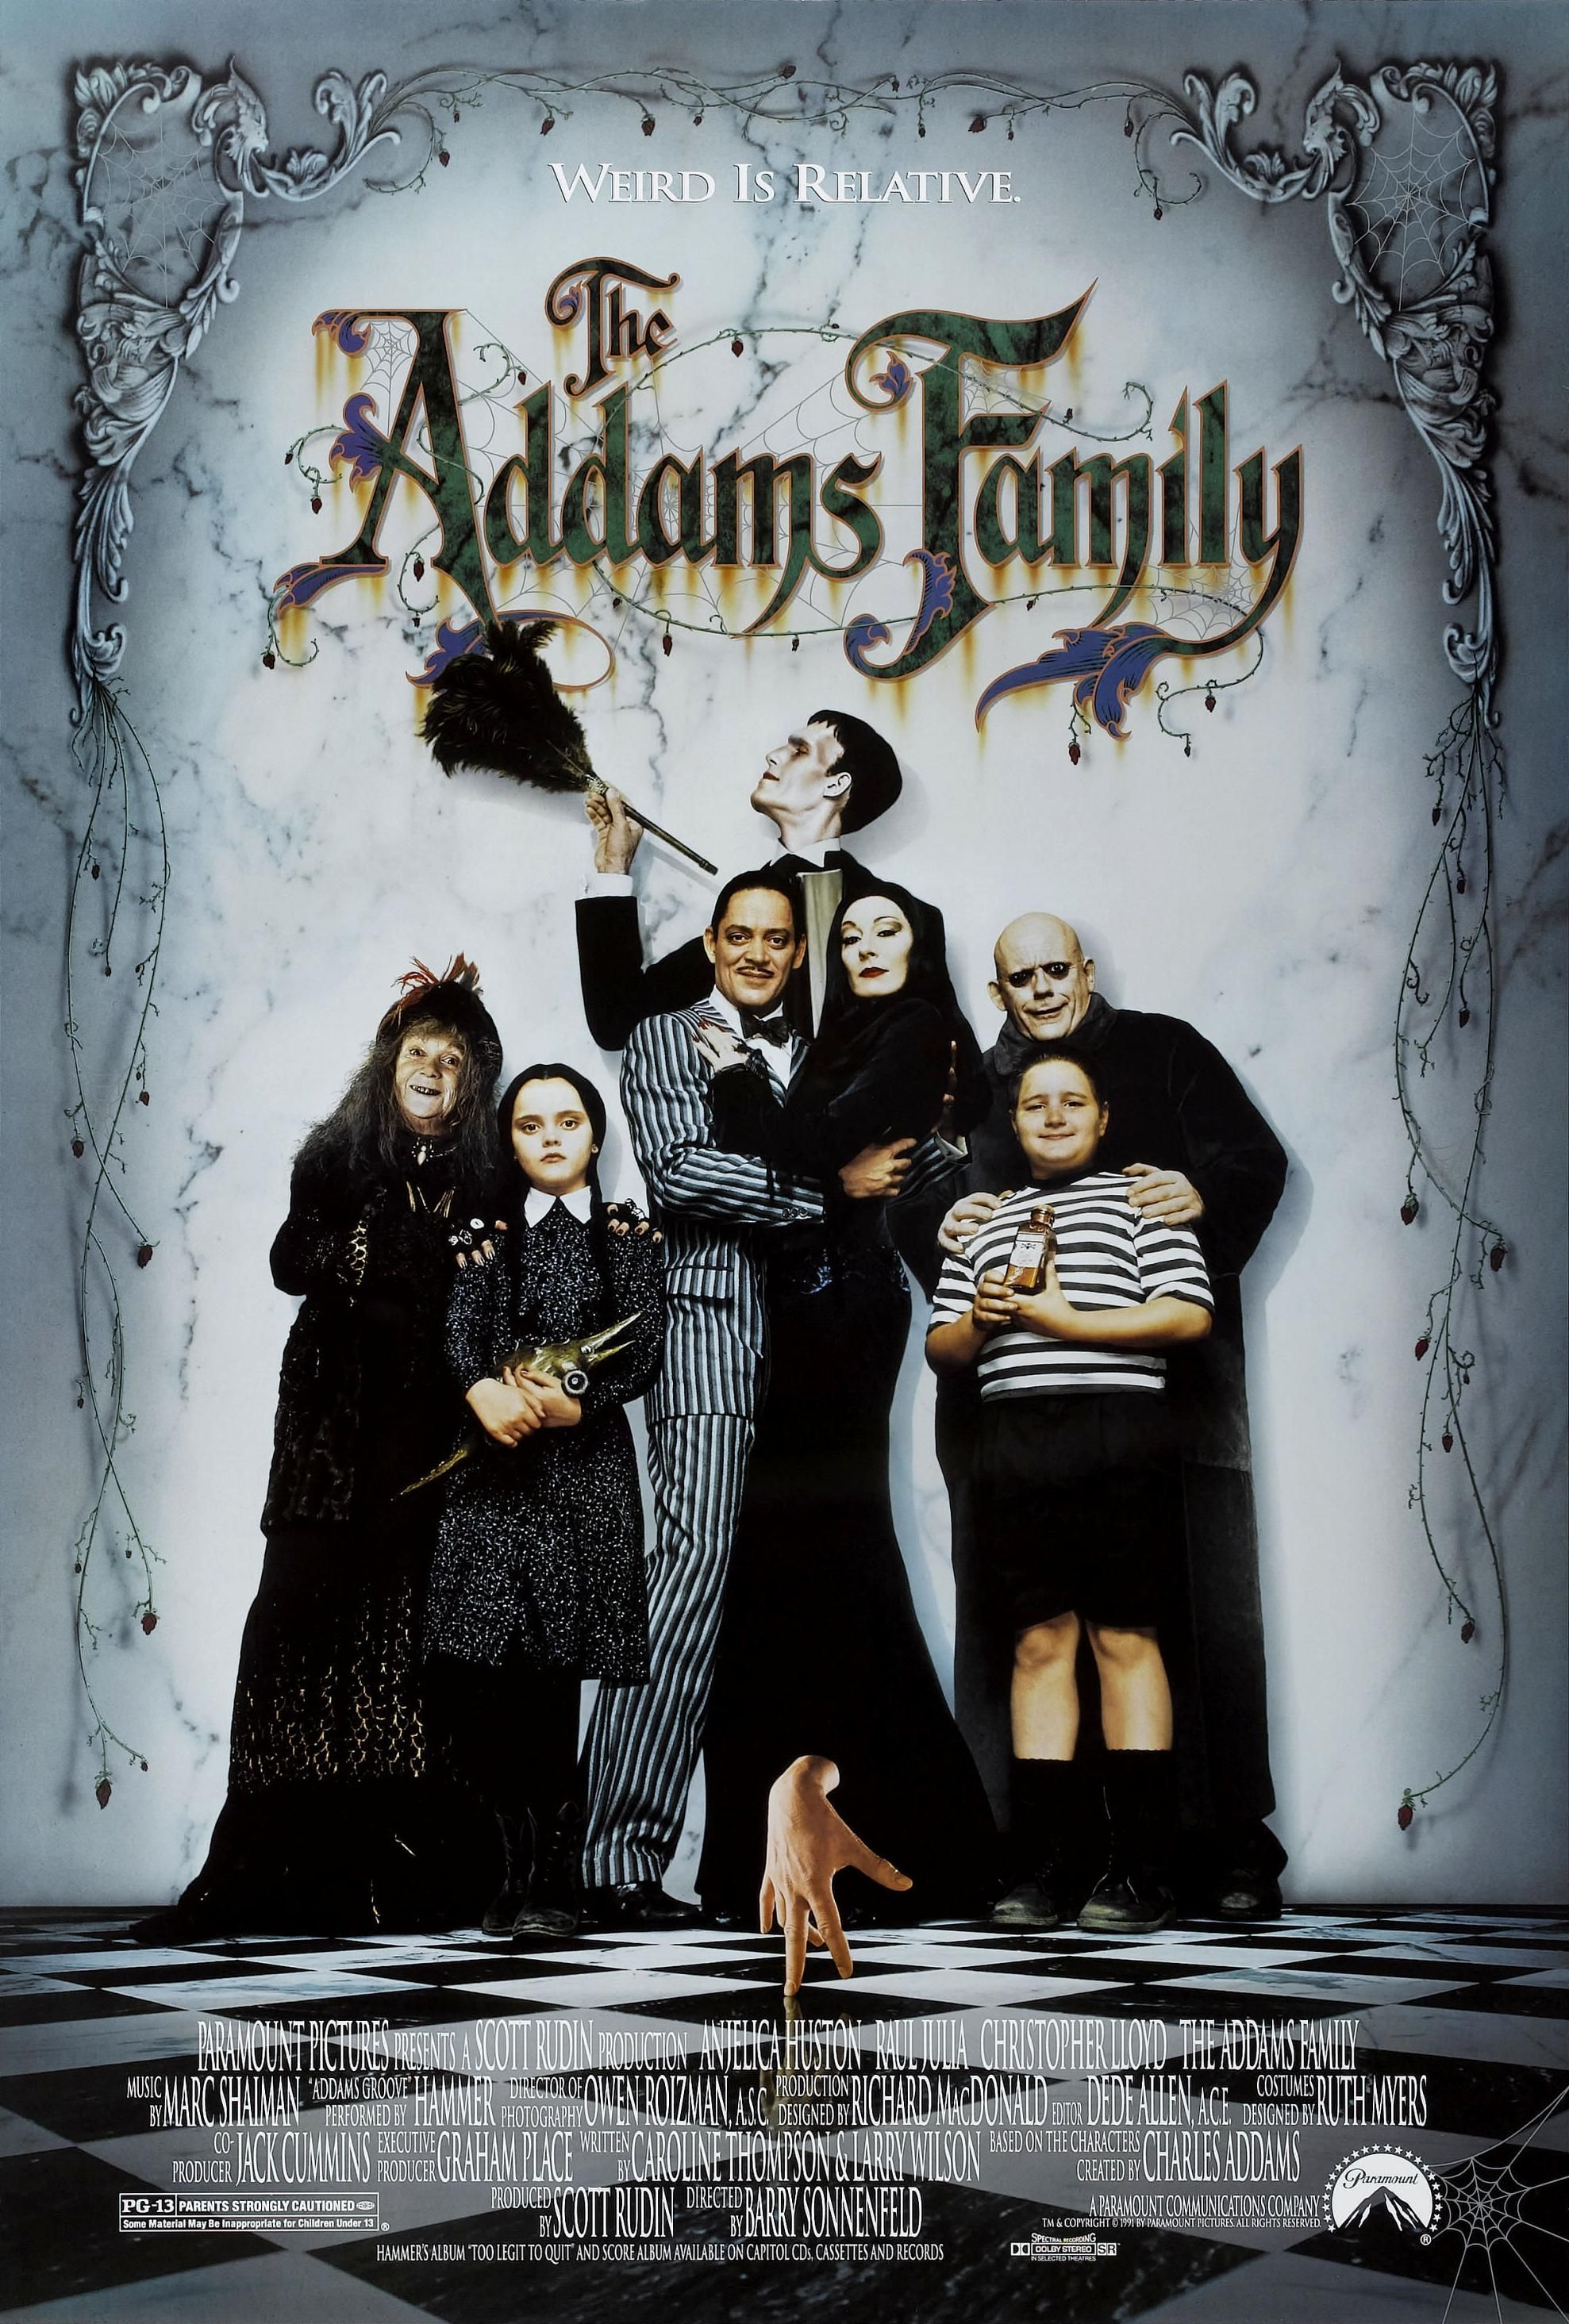 The Addams Family (1991) | Film I've Seen: 1990-1999 ...